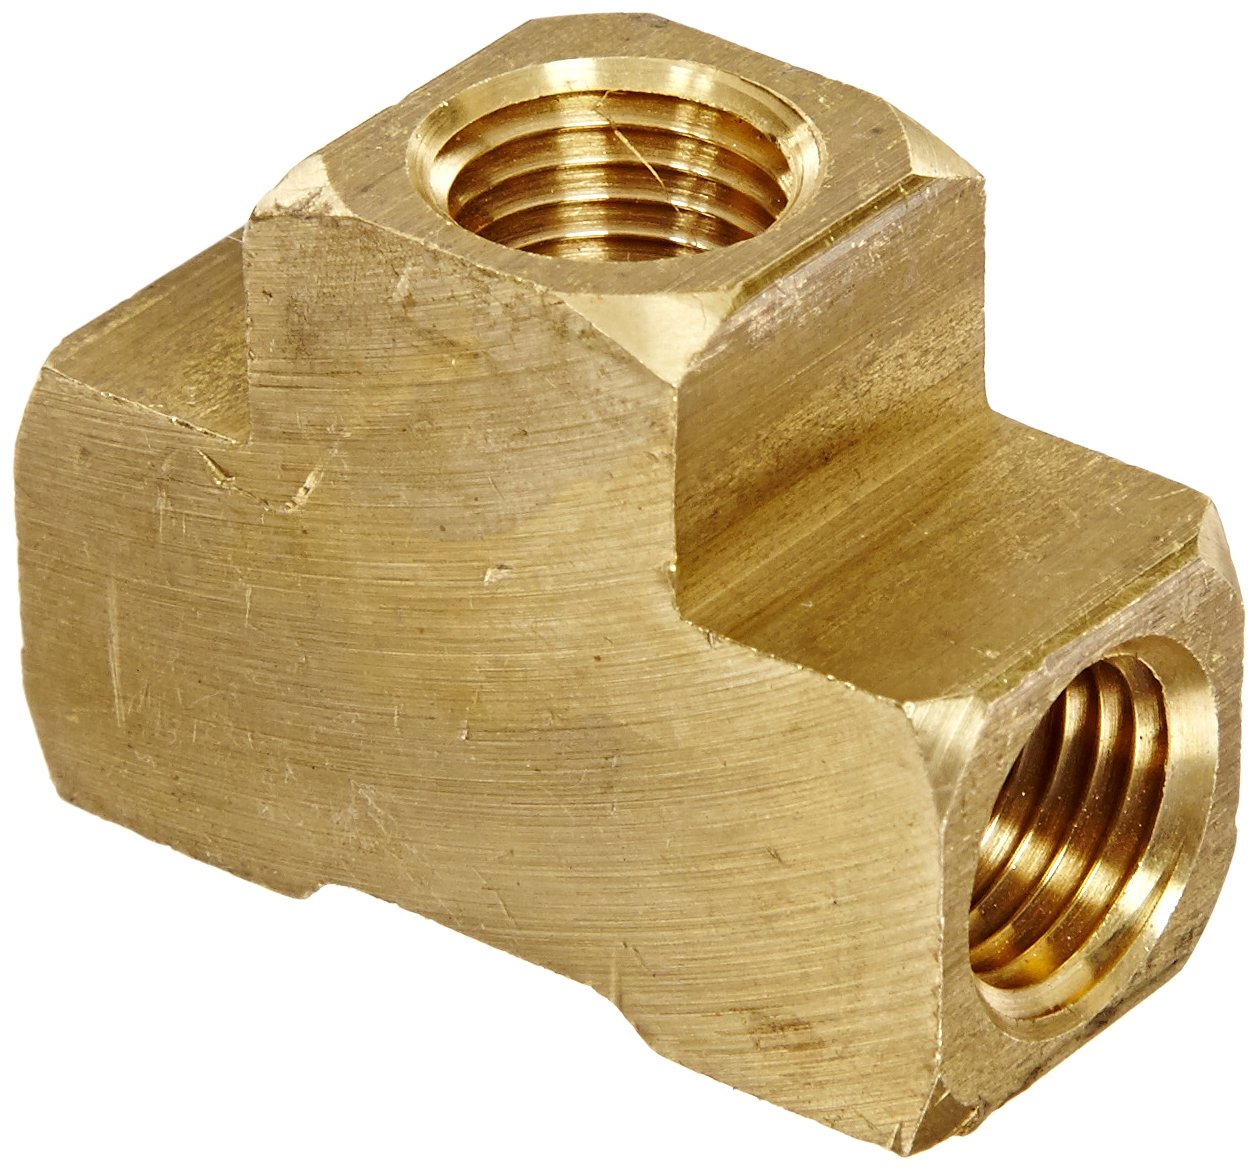 Anderson Metals 56101 Brass Pipe Fitting, Barstock Tee, 1/4'' x 1/4'' x 1/4'' NPT Female Pipe